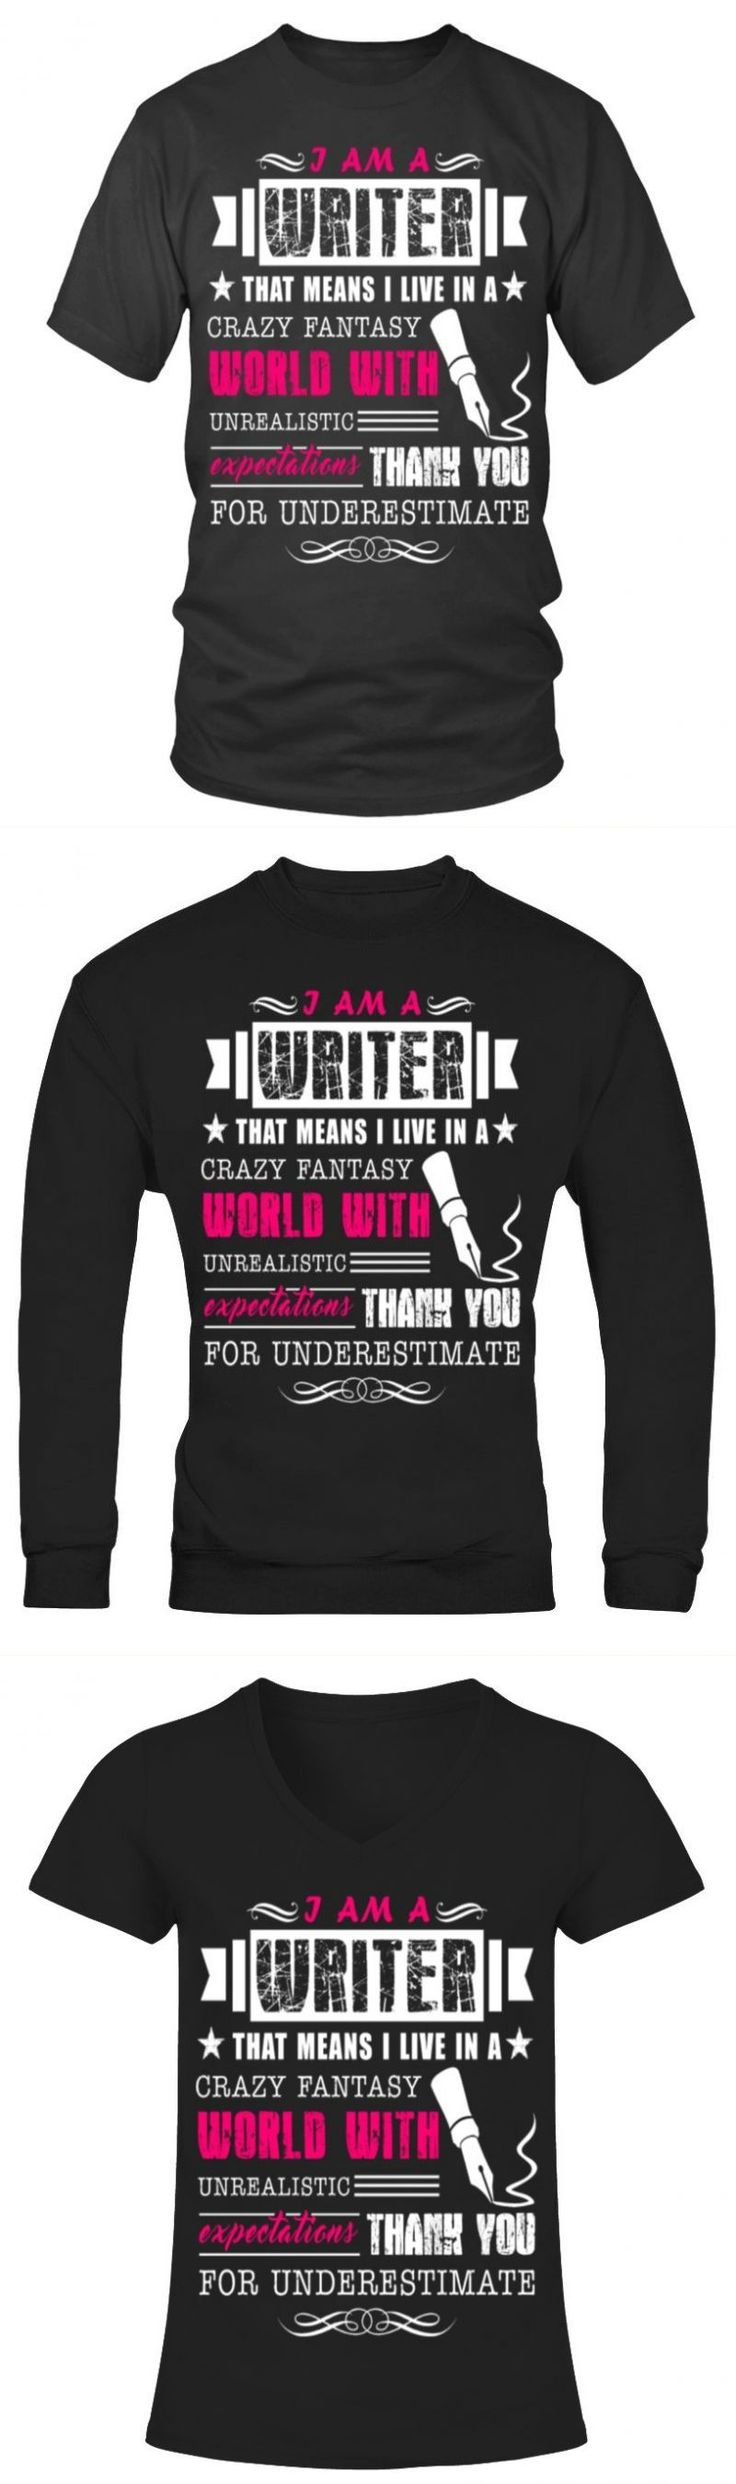 Education t-shirt quotes writer special education t shirts